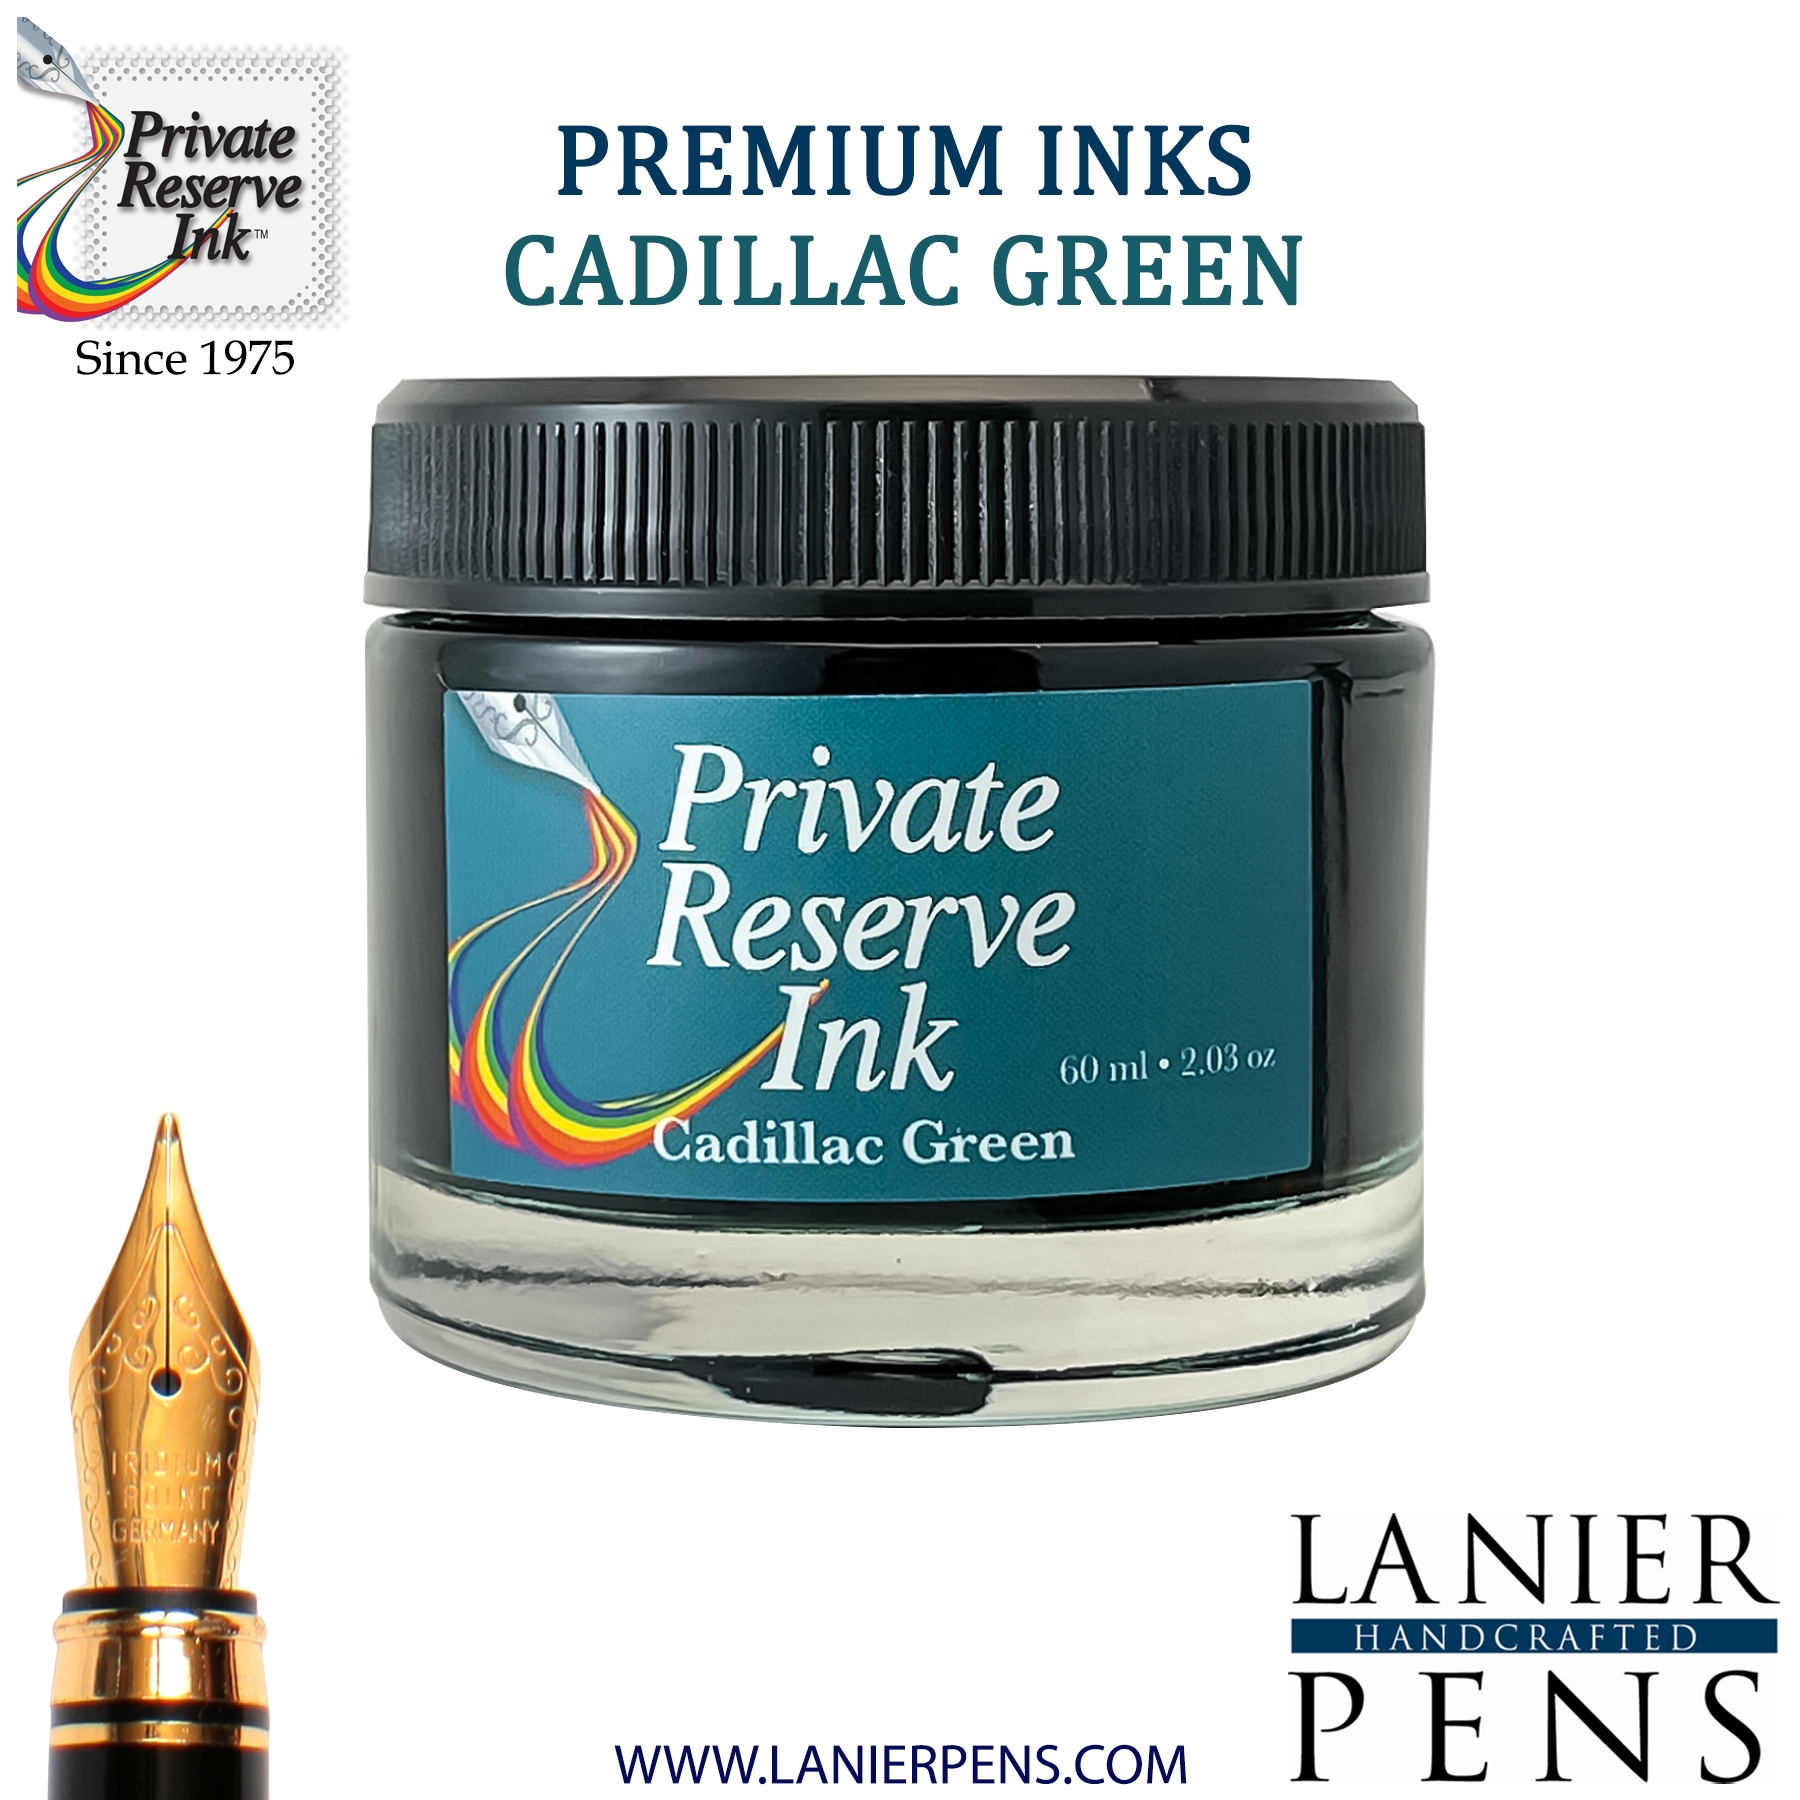 Private Reserve Cadillac Green Fountain Pen Ink Bottle 48-cg Lanier Pens